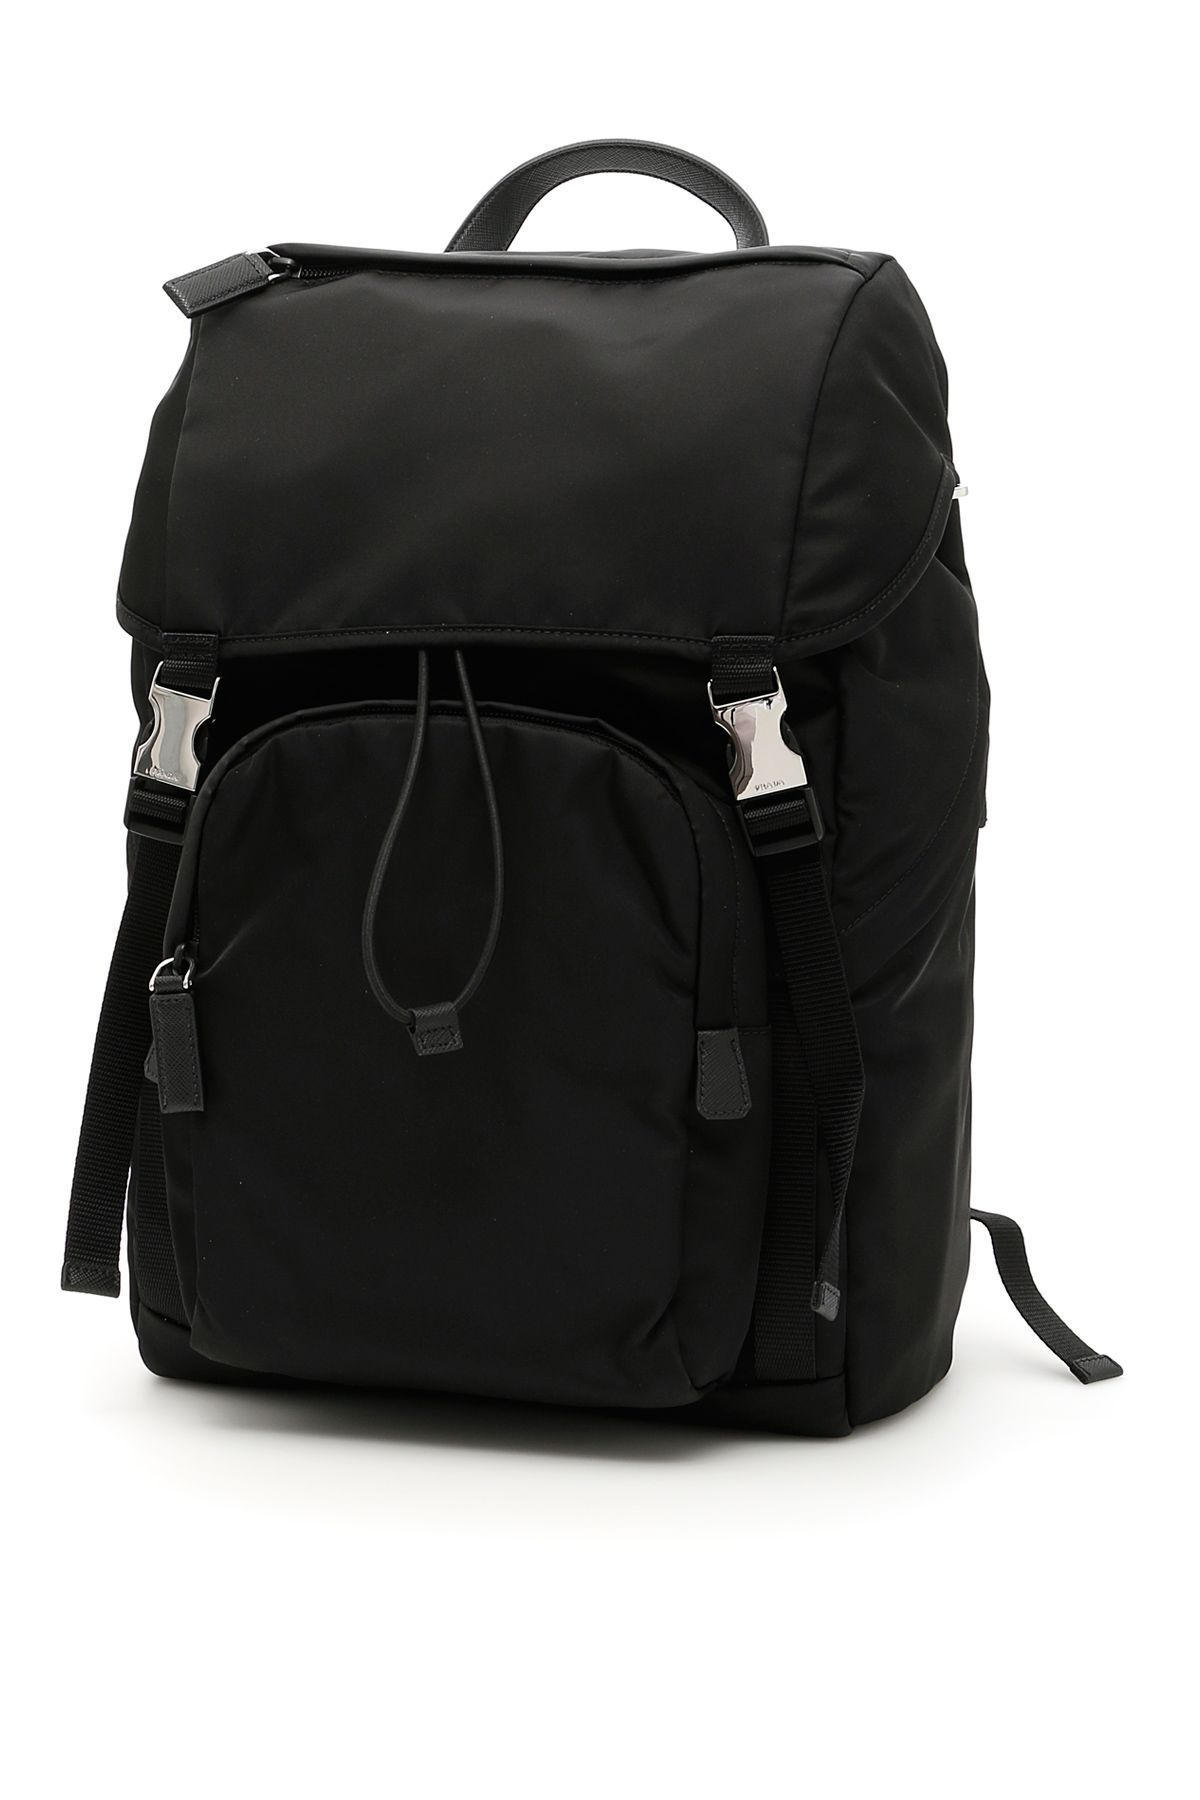 1b7377a5af35 PRADA NYLON BACKPACK.  prada  bags  lining  nylon  backpacks  pradanylonbag